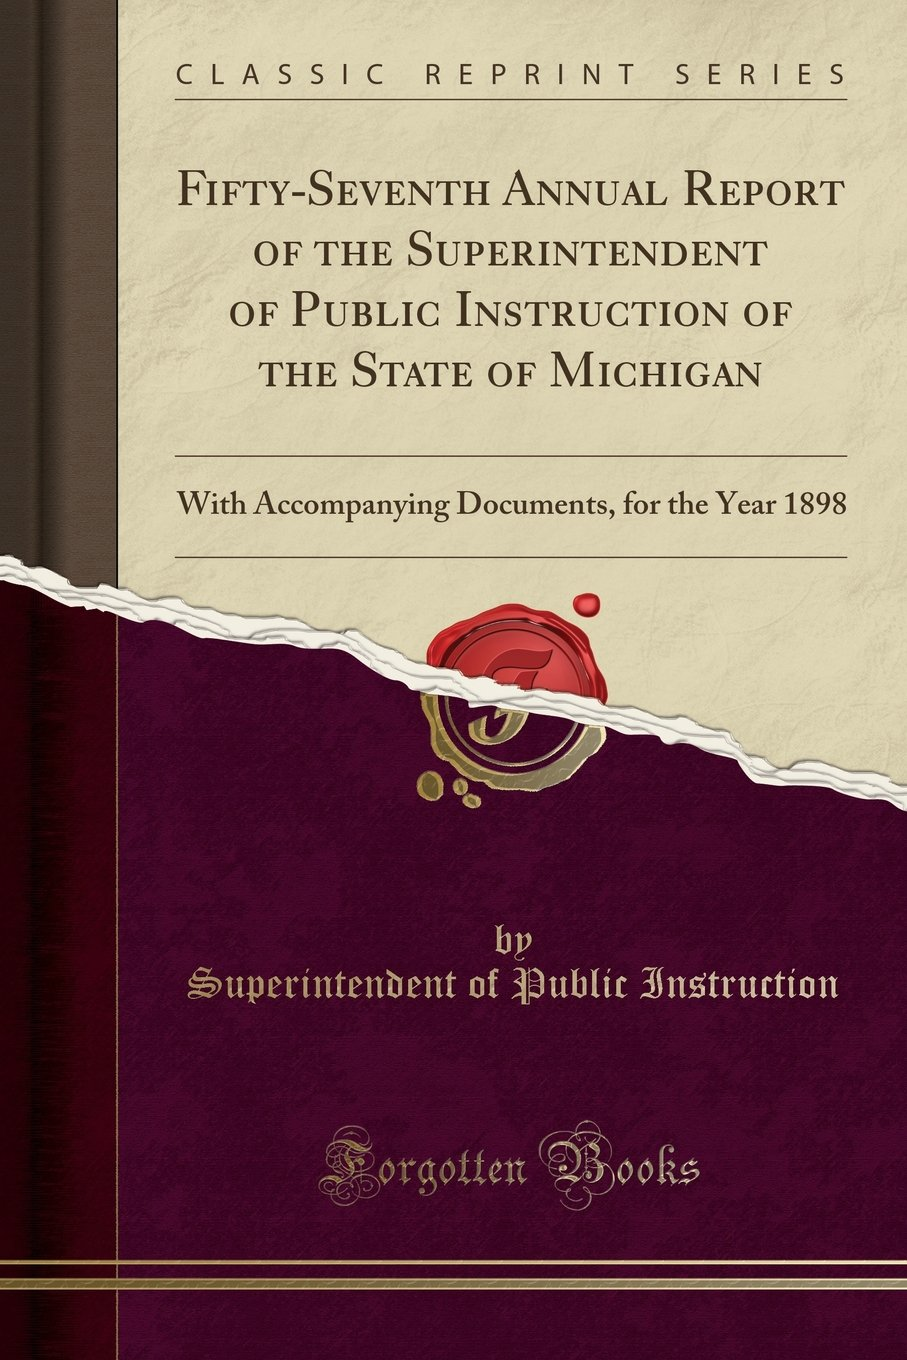 Download Fifty-Seventh Annual Report of the Superintendent of Public Instruction of the State of Michigan: With Accompanying Documents, for the Year 1898 (Classic Reprint) pdf epub